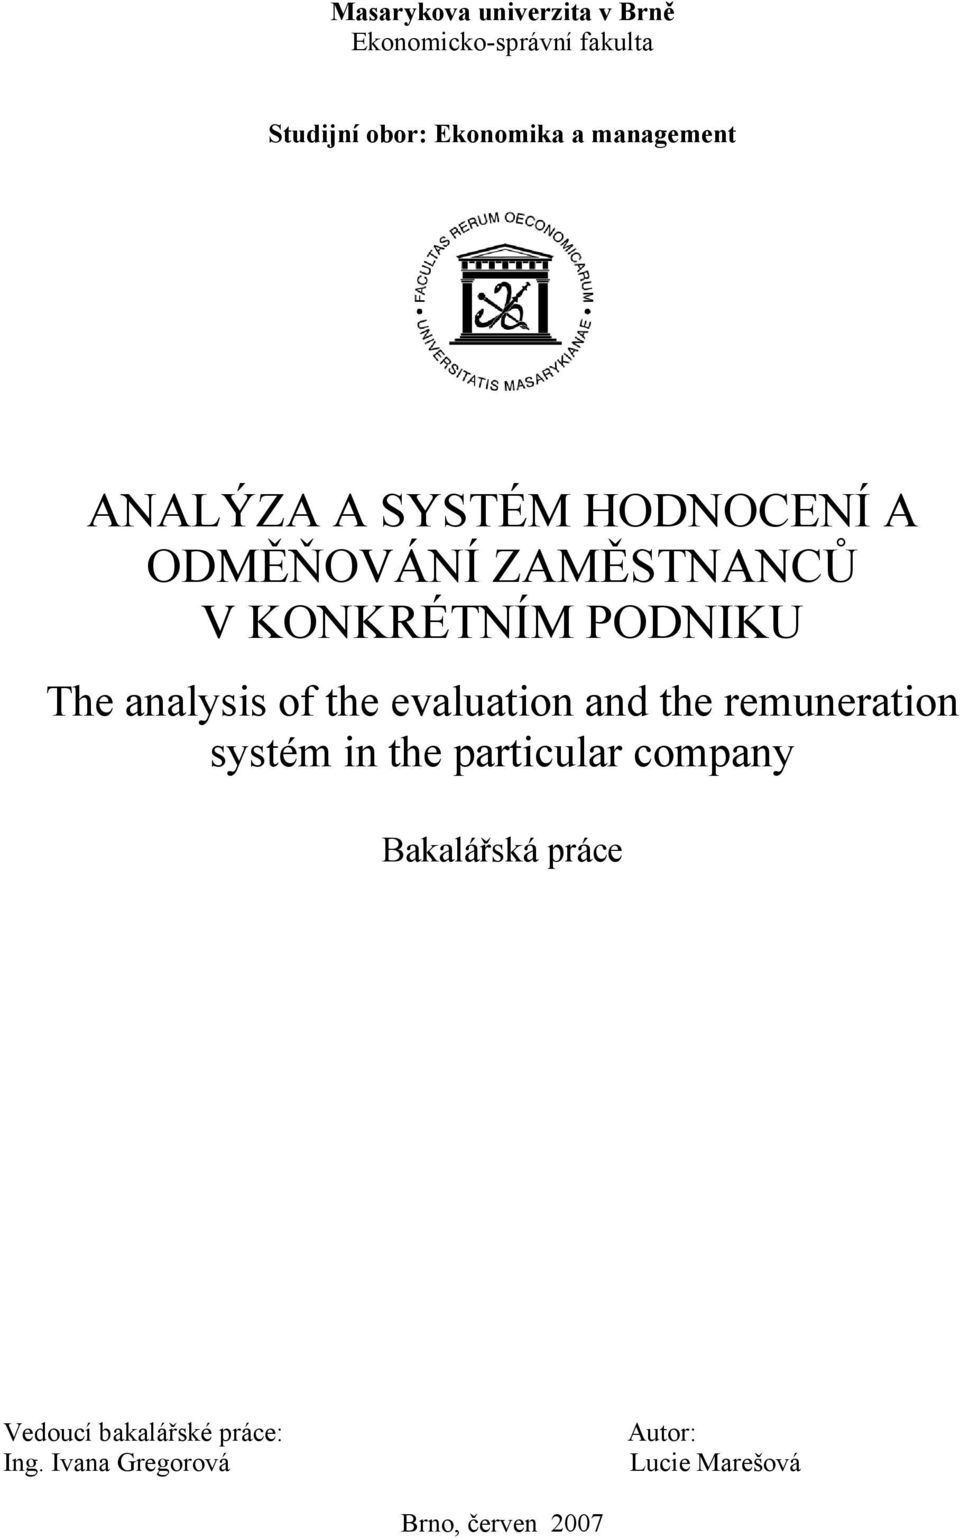 analysis of the evaluation and the remuneration systém in the particular company